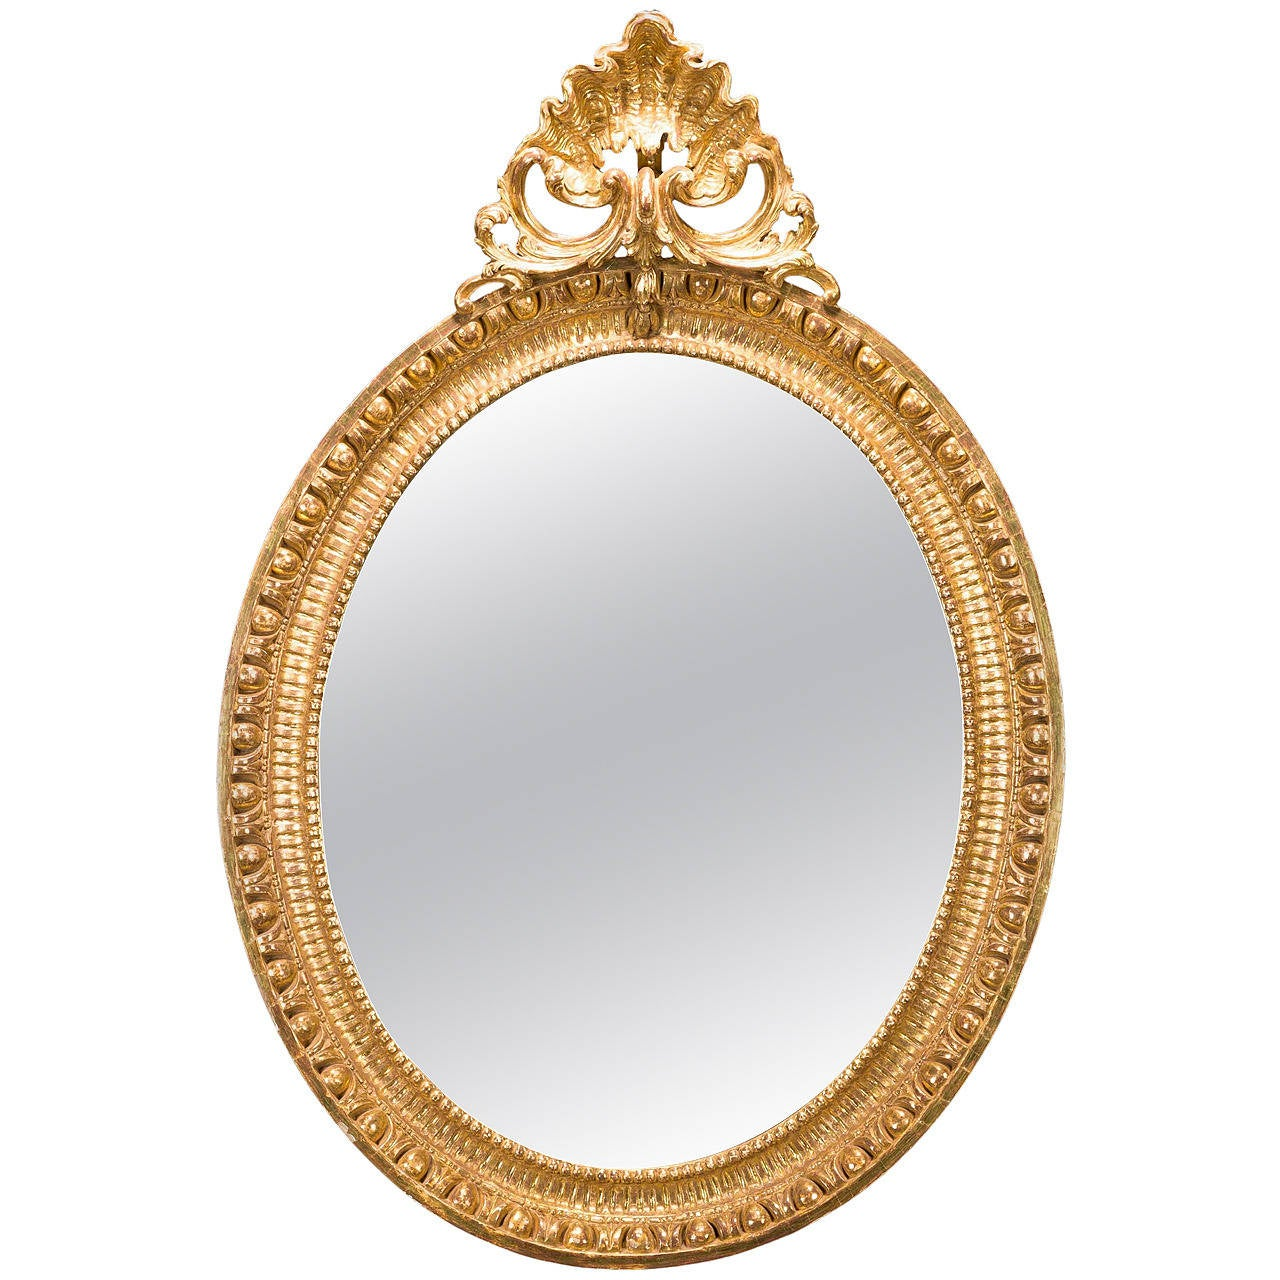 Chippendale period oval mirror for sale at 1stdibs for Mirrors for sale